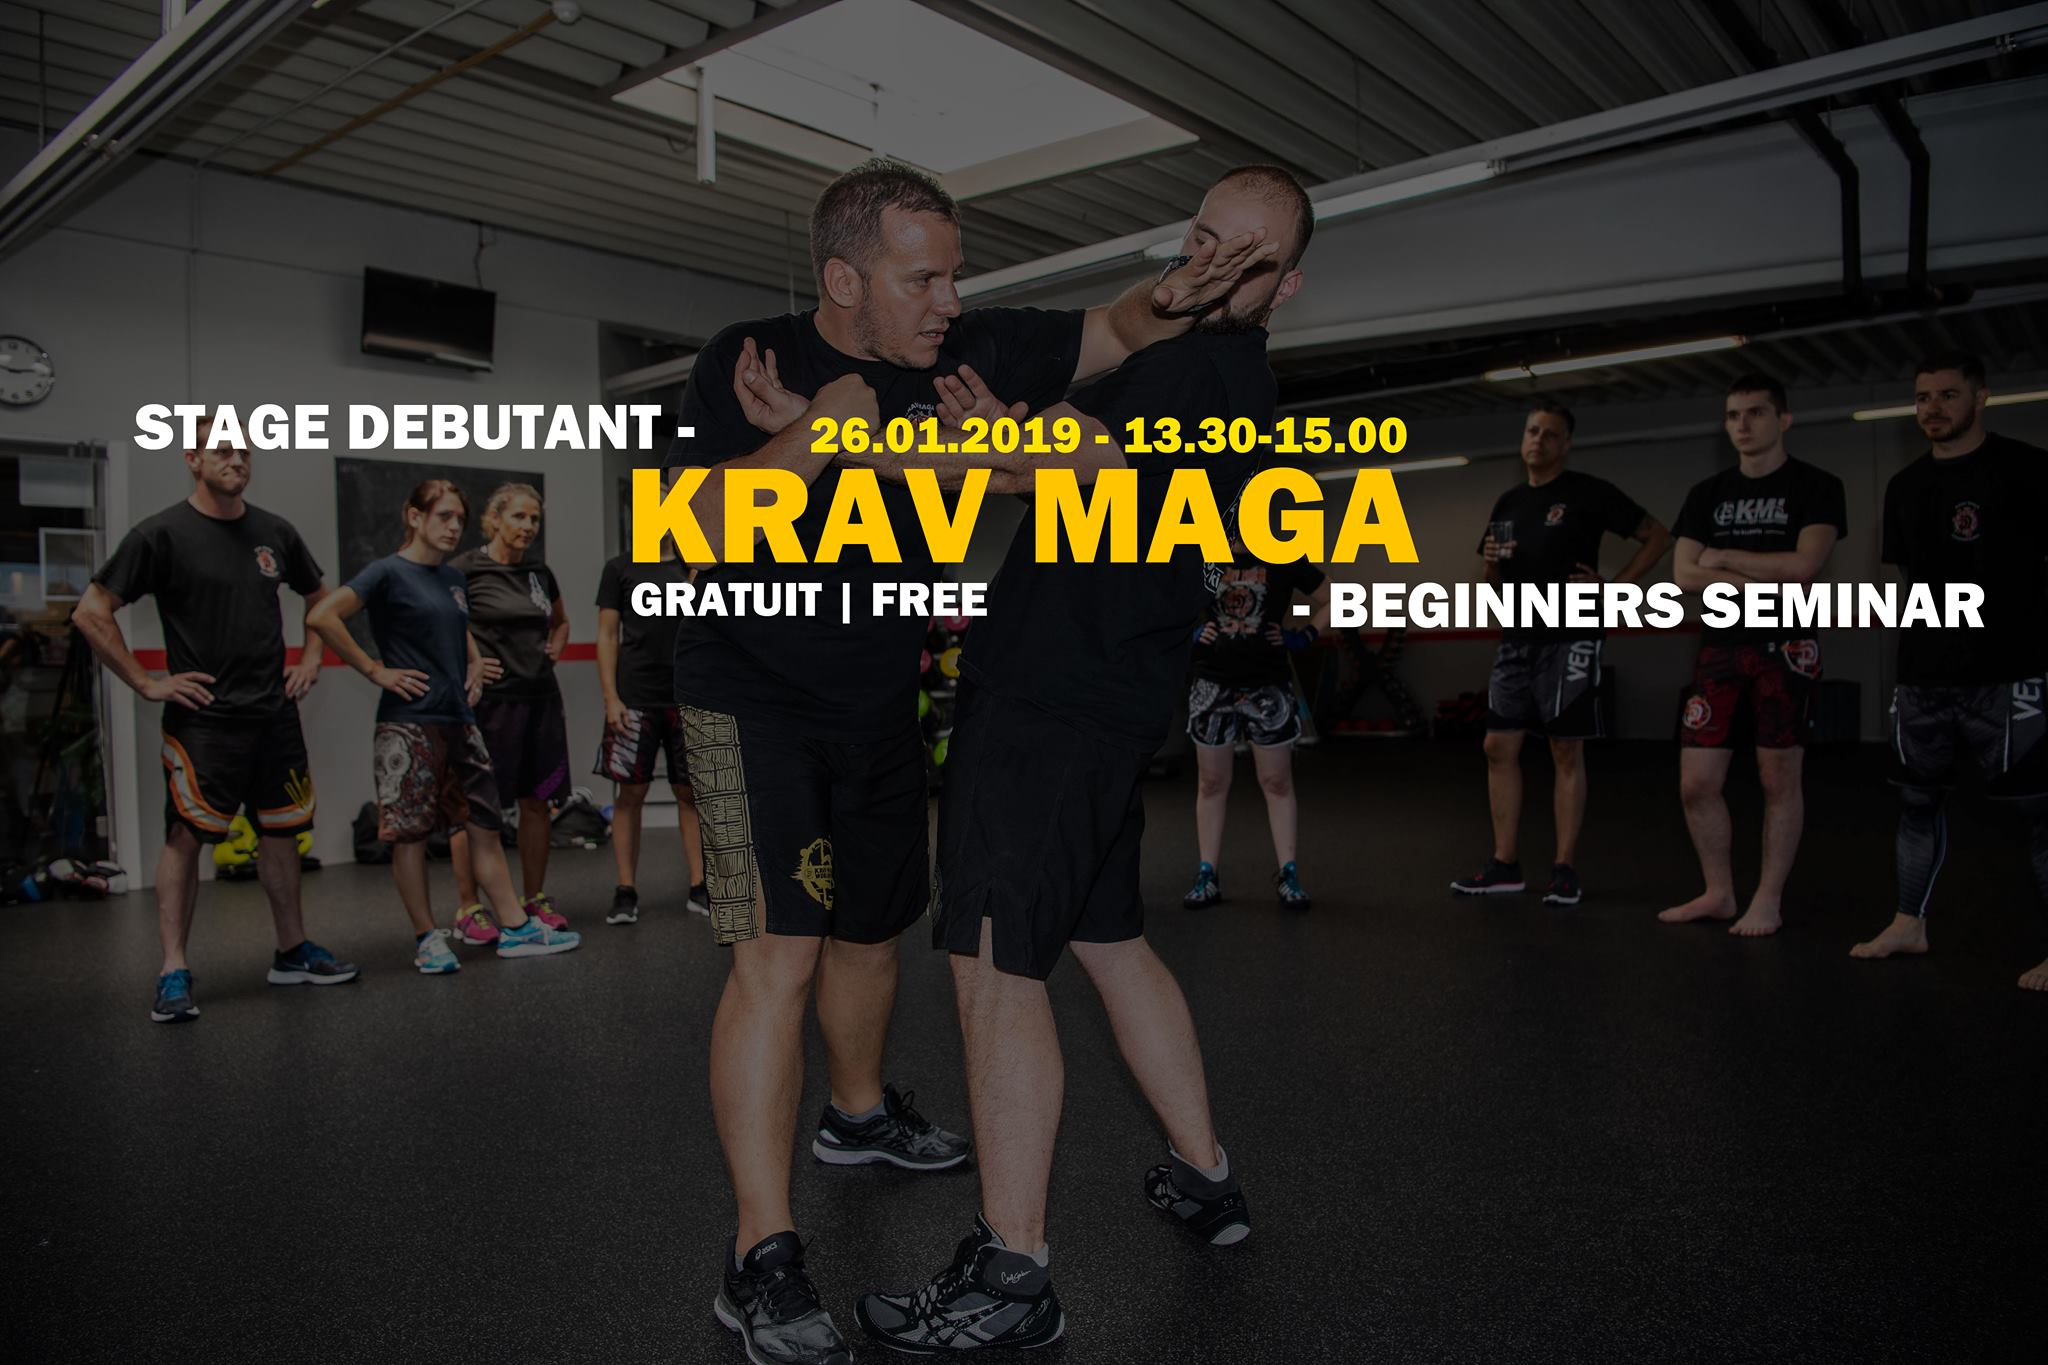 Krav Maga Center Luxembourg